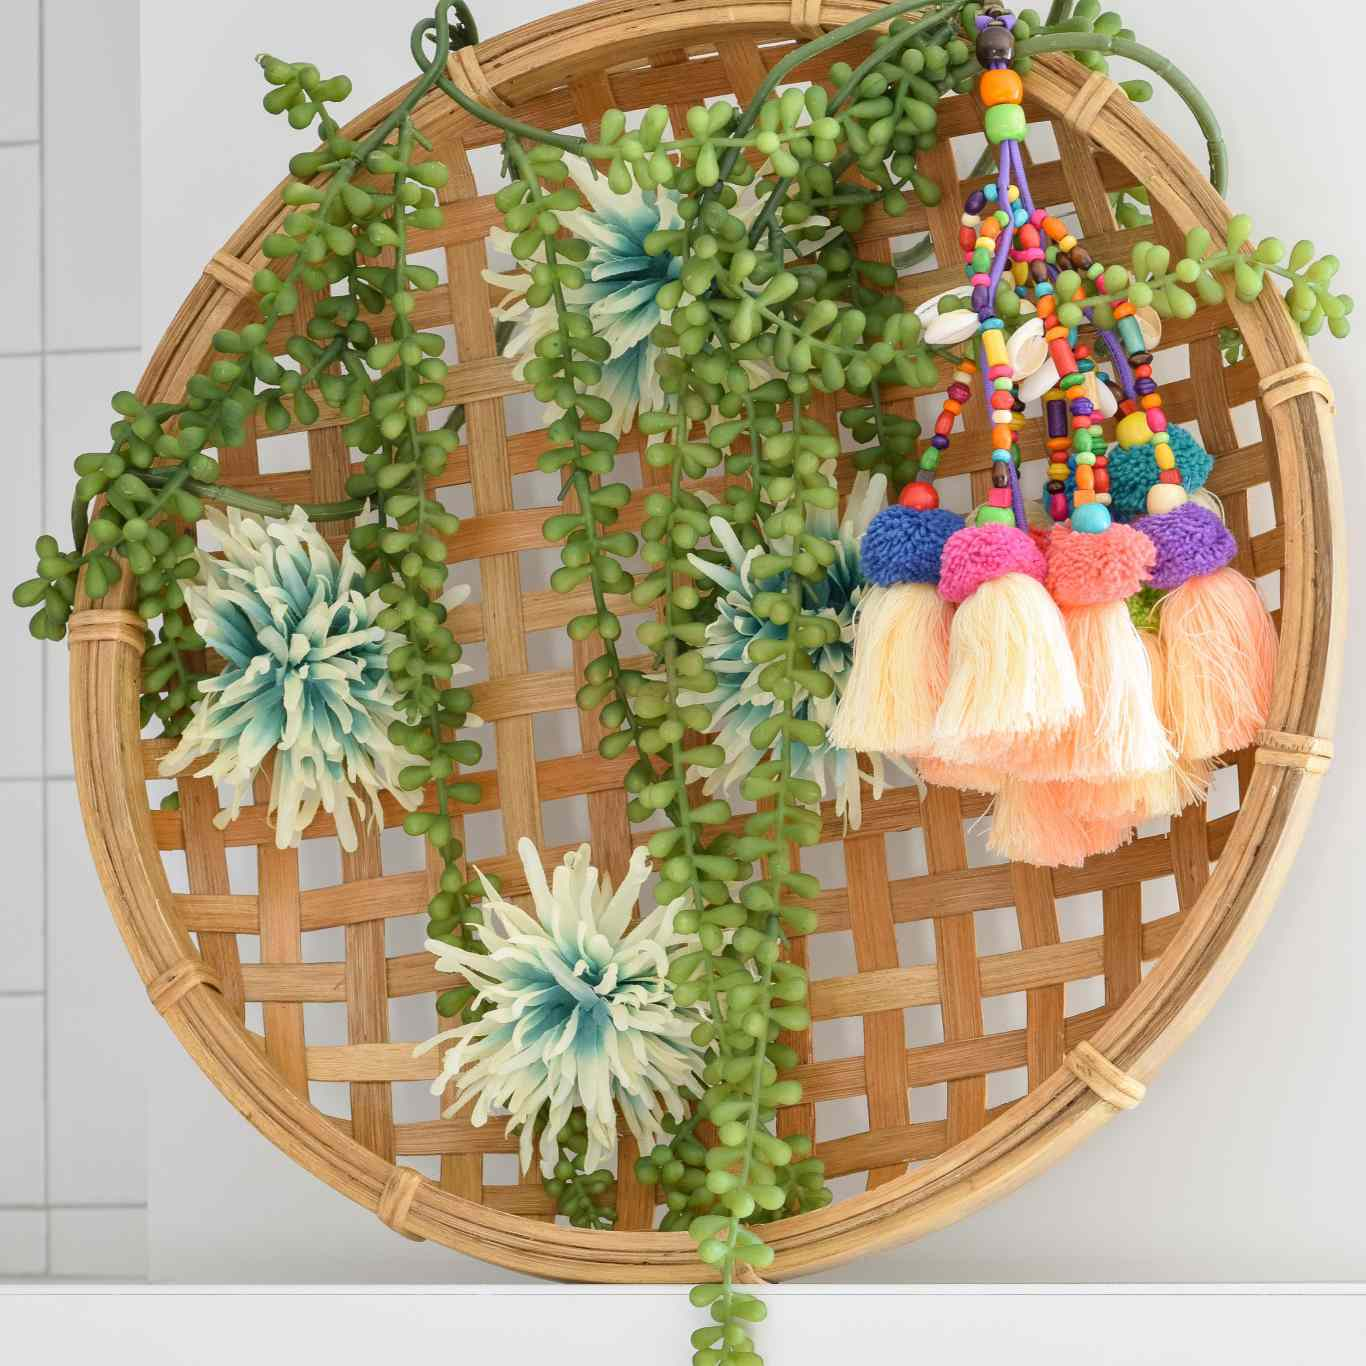 a woven basket with plants and tassels in a wreath